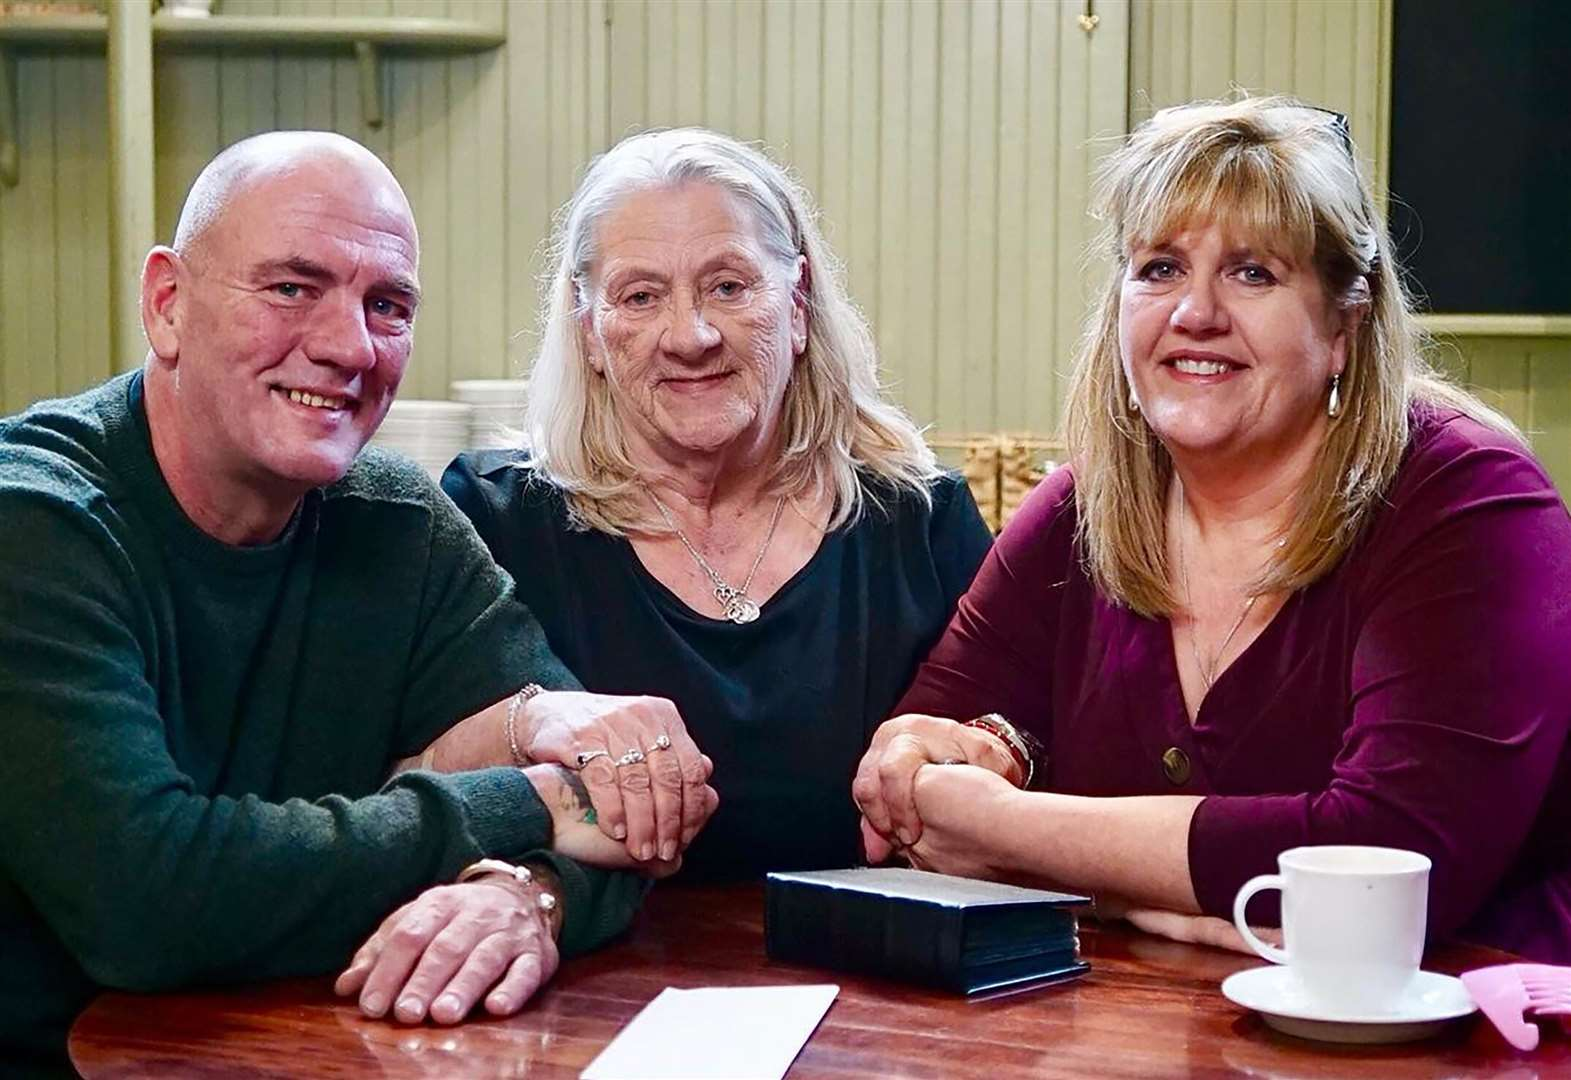 Long lost family are reunited in town after decades apart